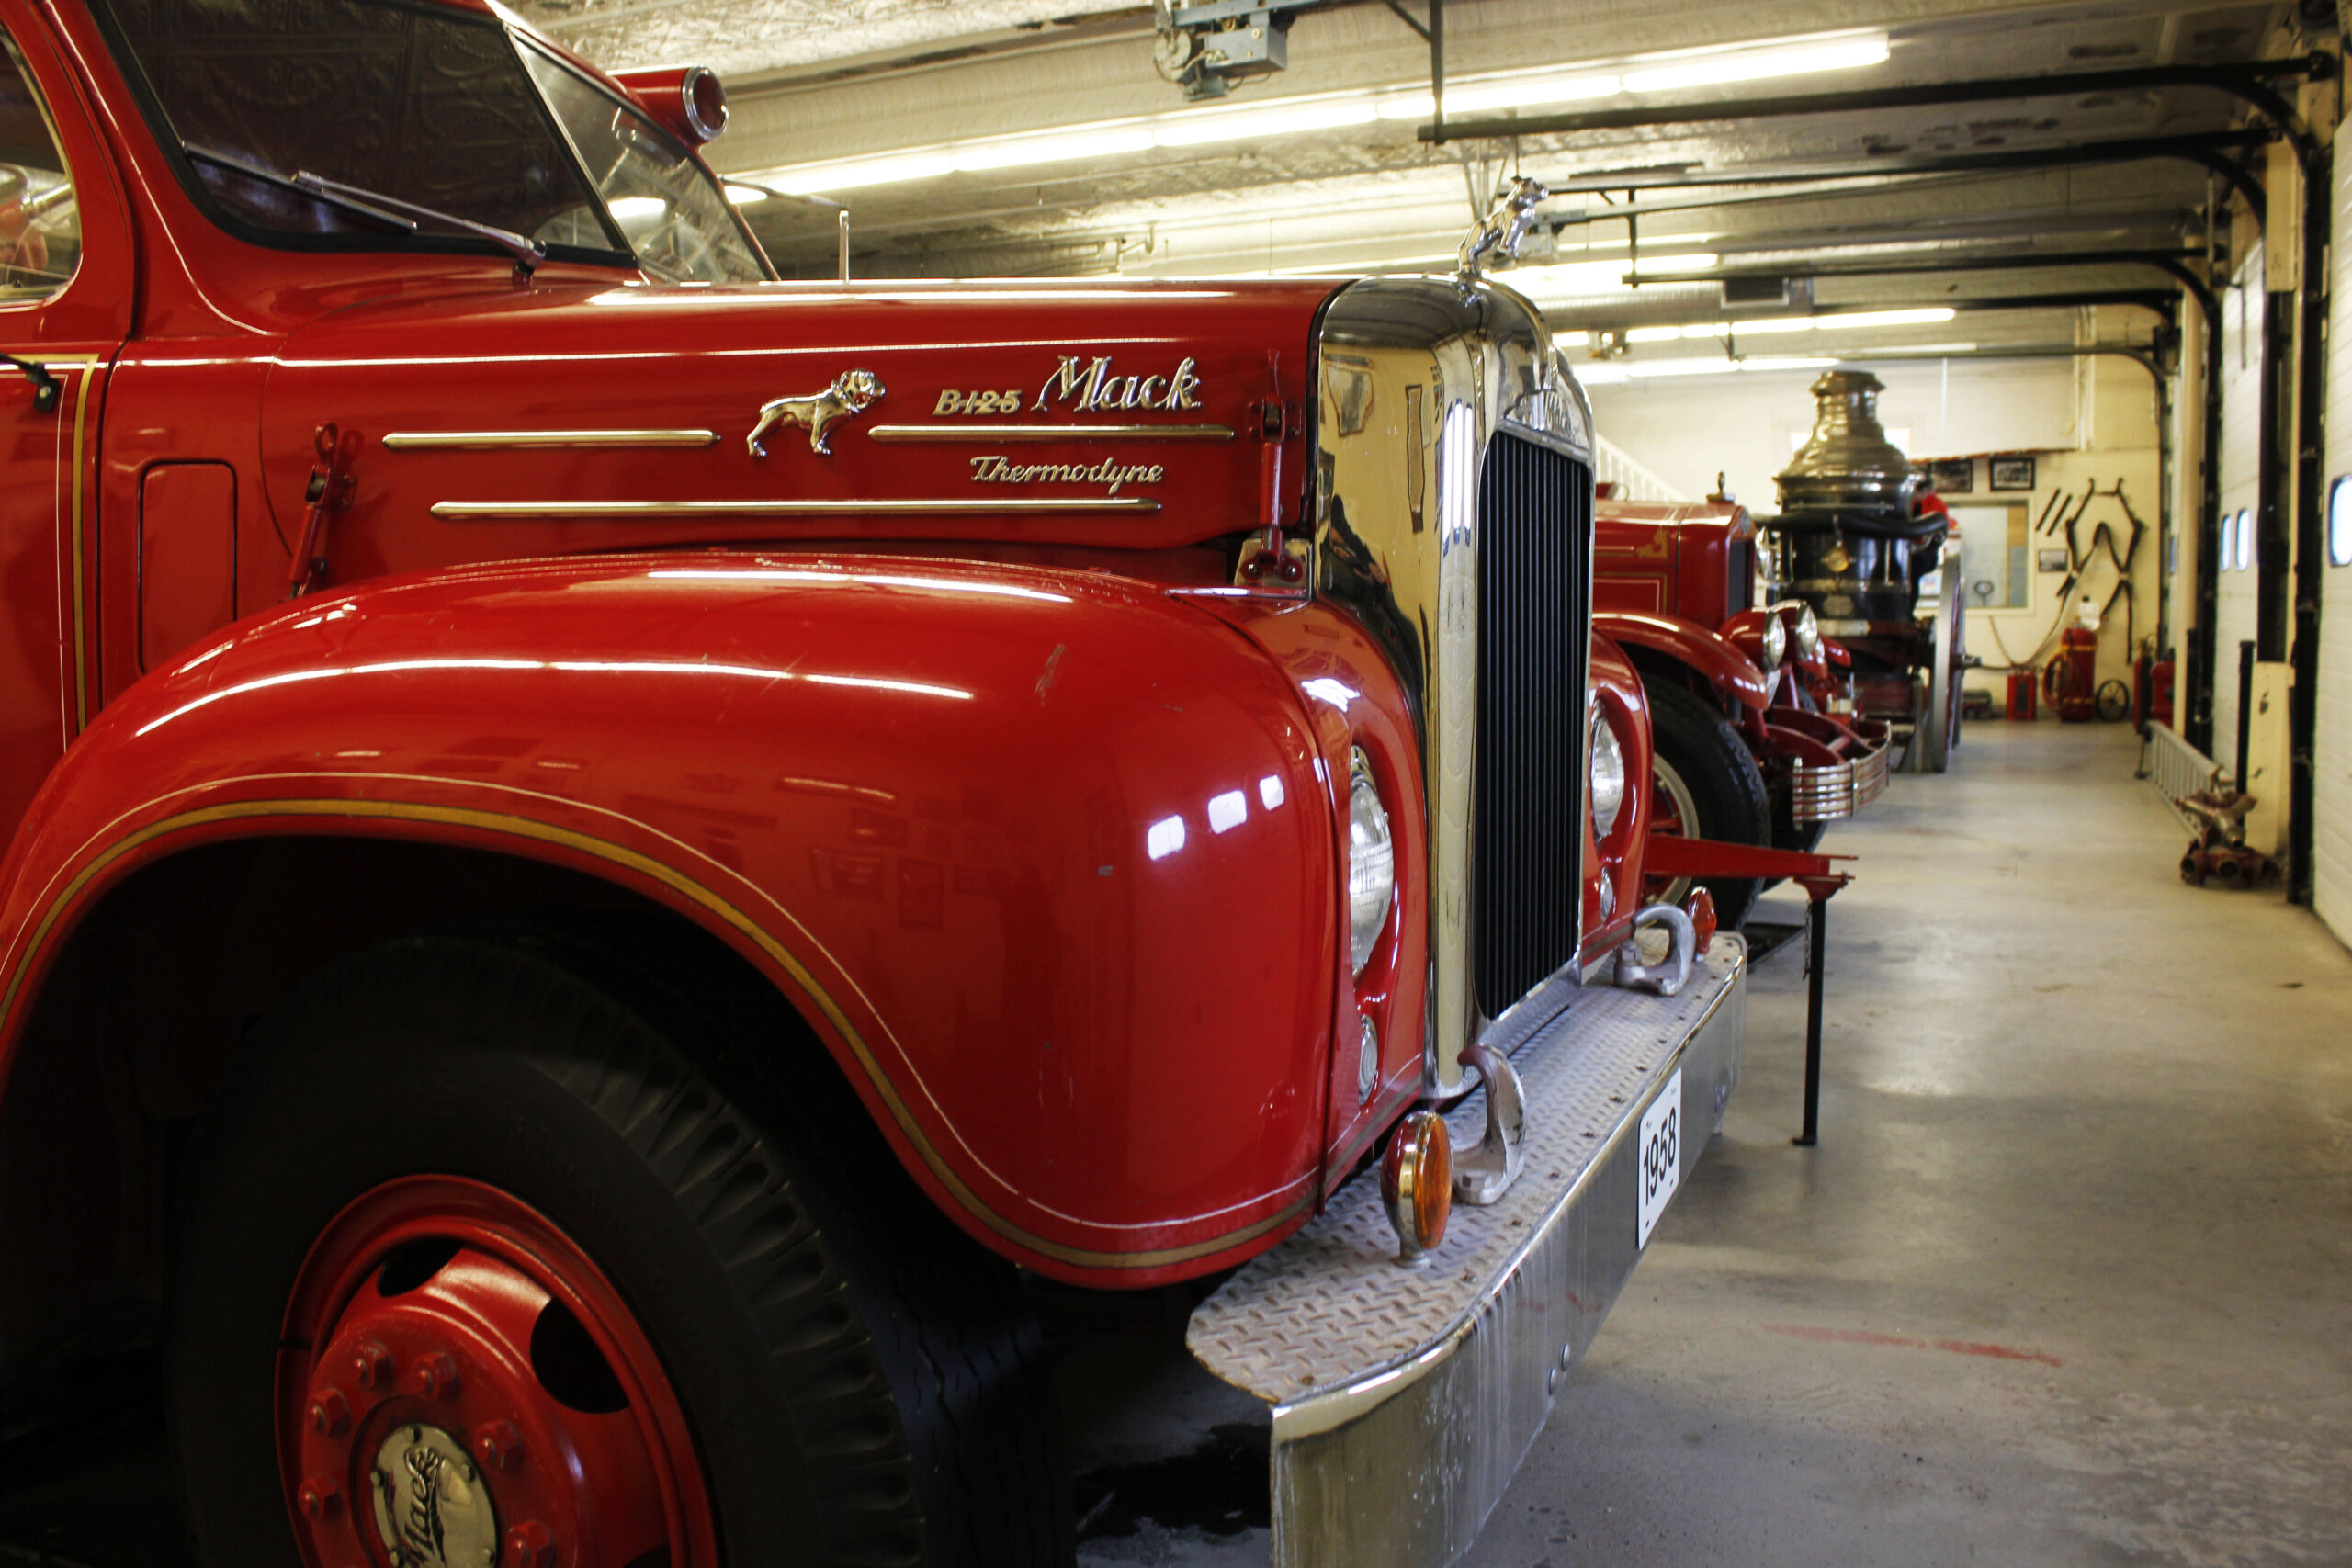 THE FIRE FIGHTERS MUSEUM